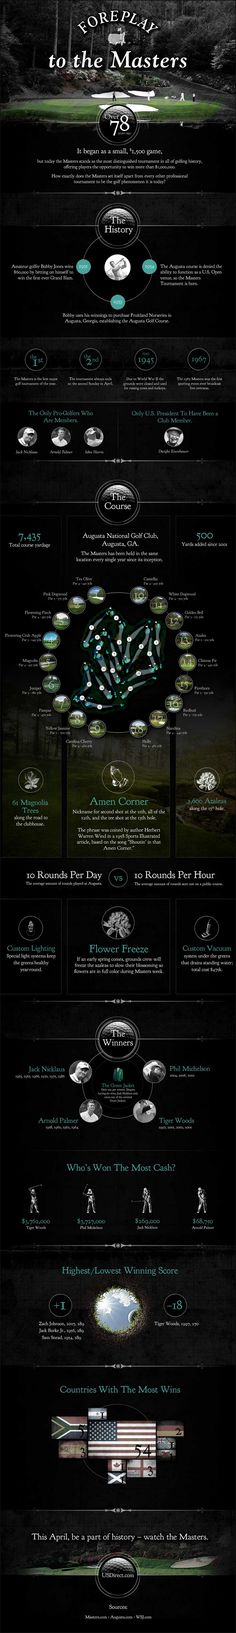 Masters Infographic: The best week in golf.